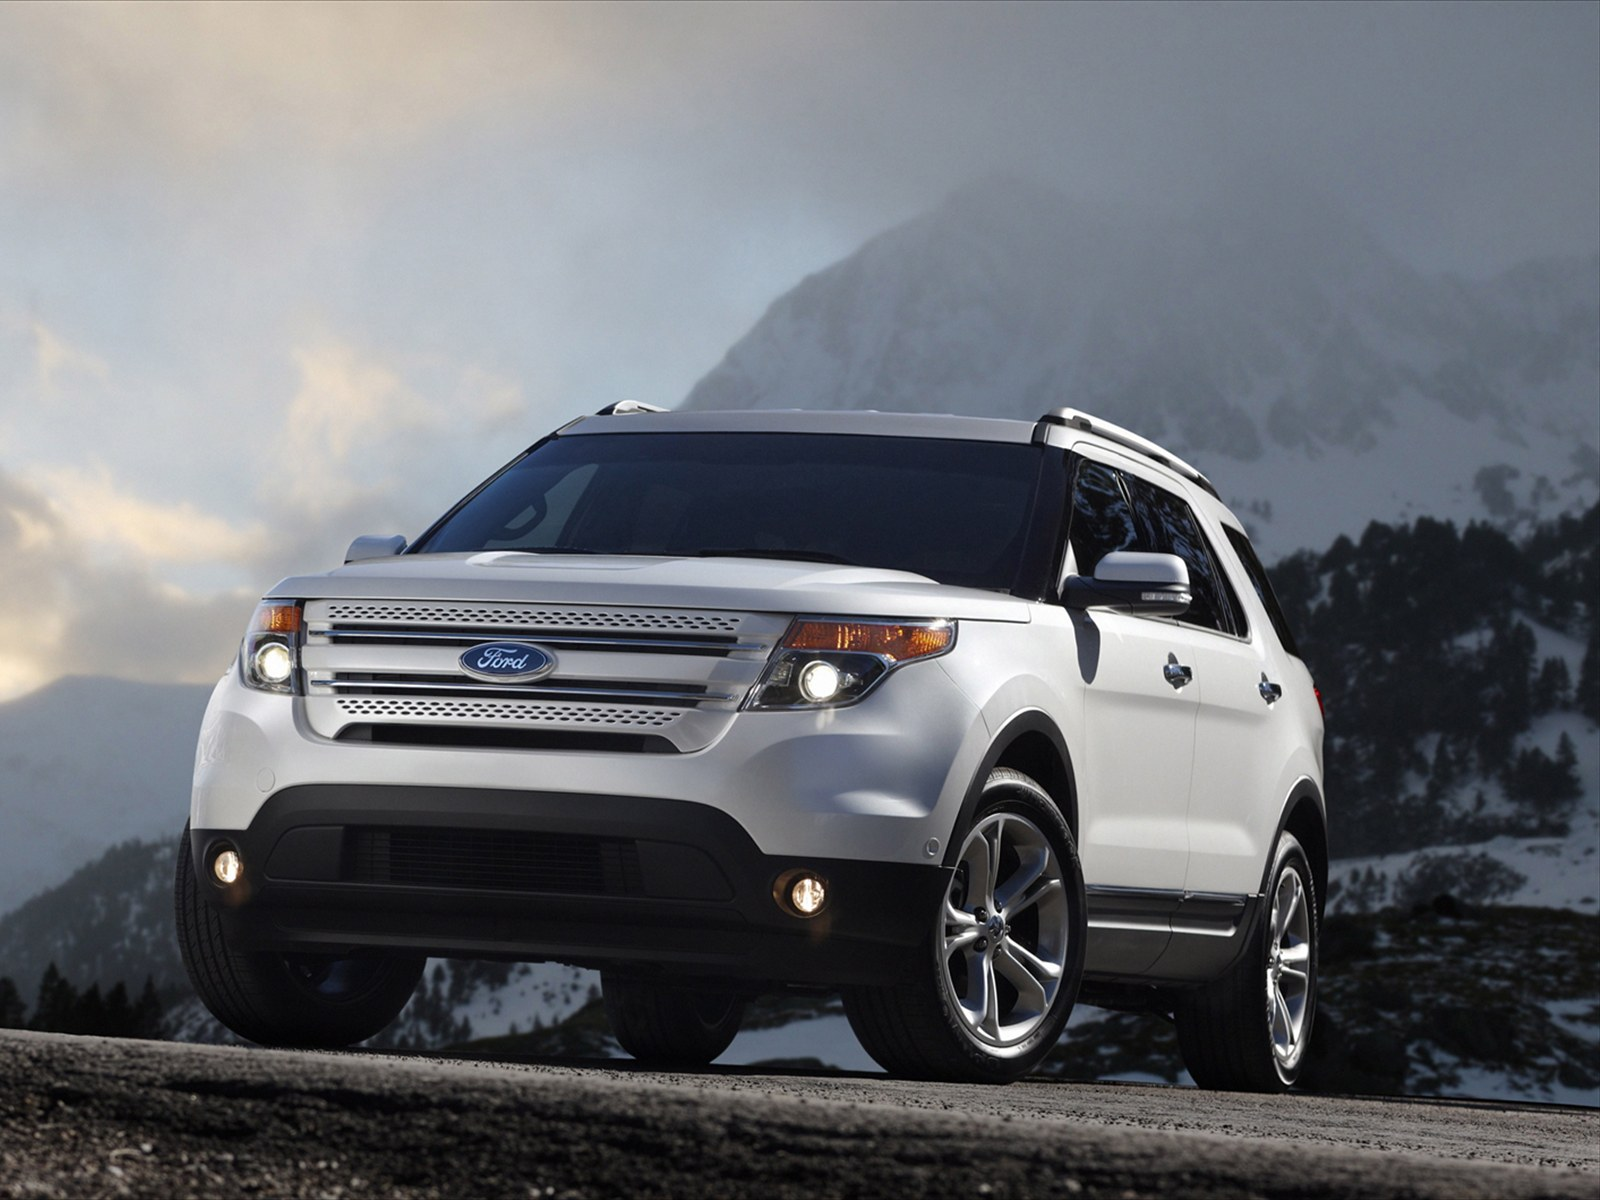 Car Pictures: Ford Explorer 2011